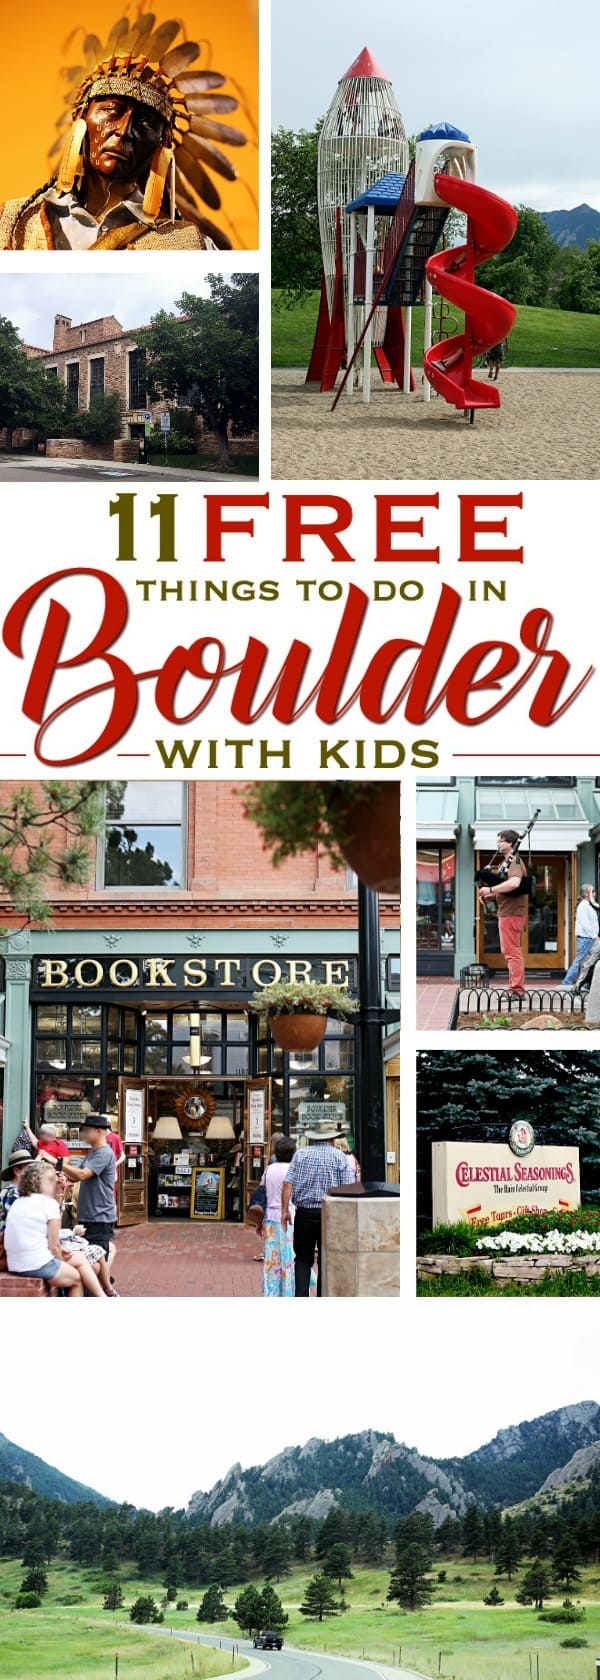 Free Things to Do in Boulder with the Kids #RoadTripOil (AD) @walmart